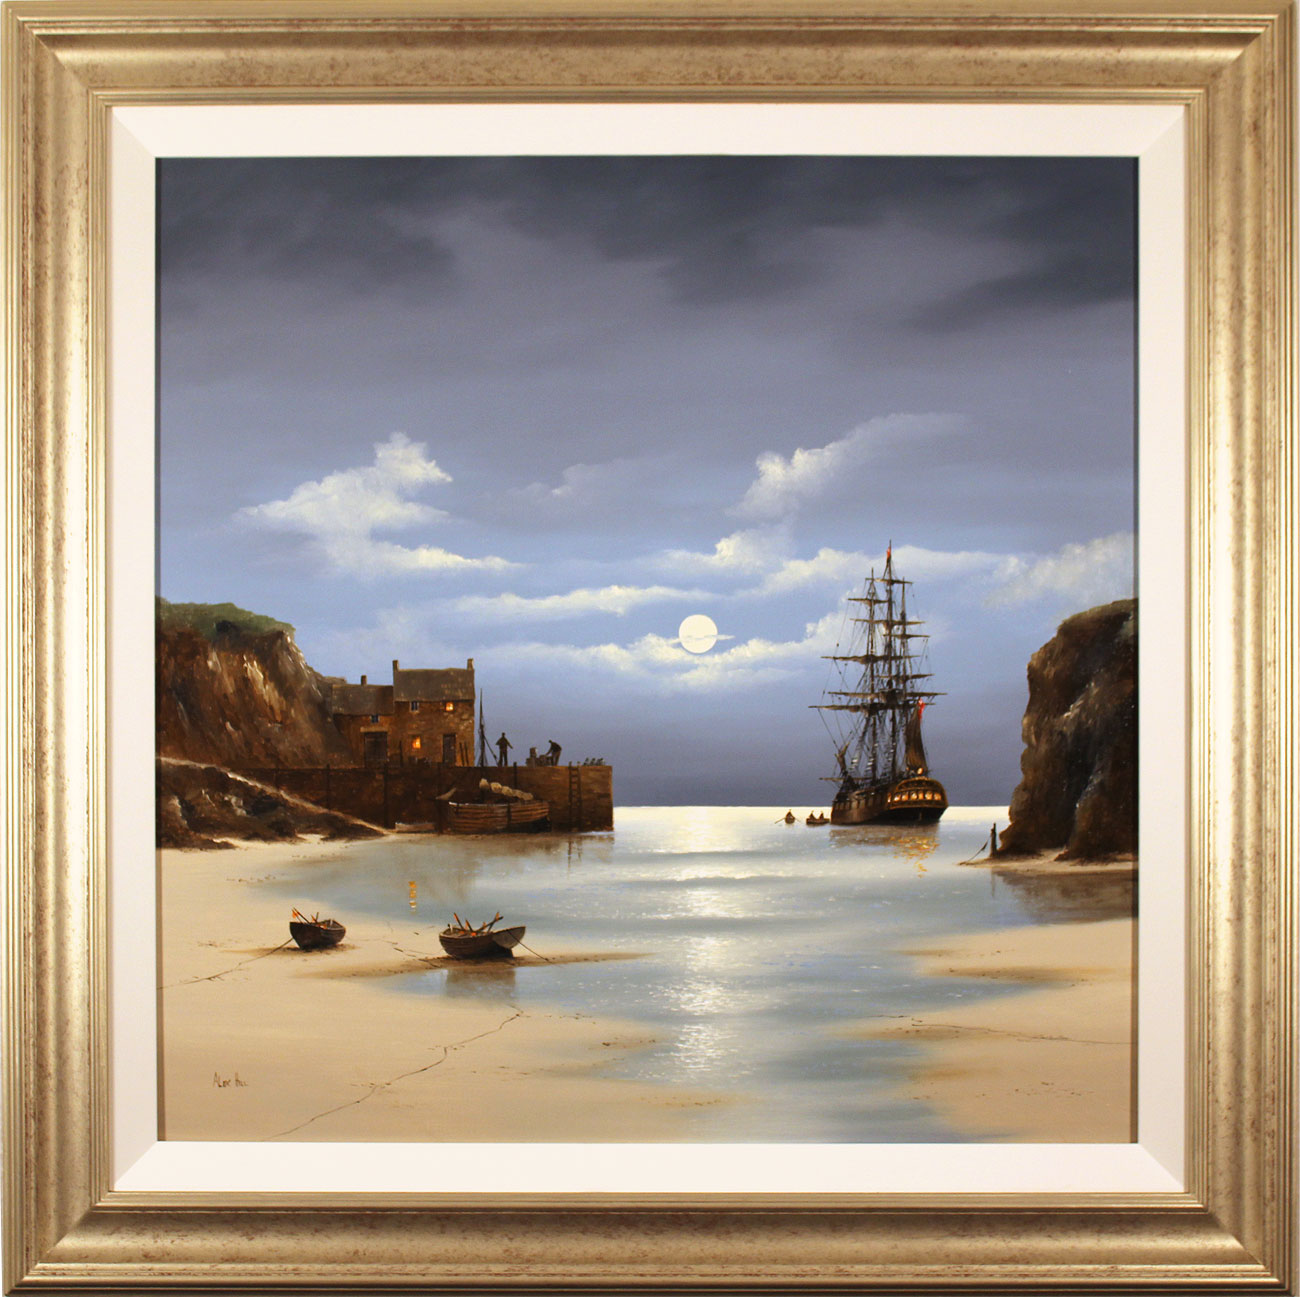 Alex Hill, Original oil painting on canvas, Low Tide at Smuggler's Bay Click to enlarge